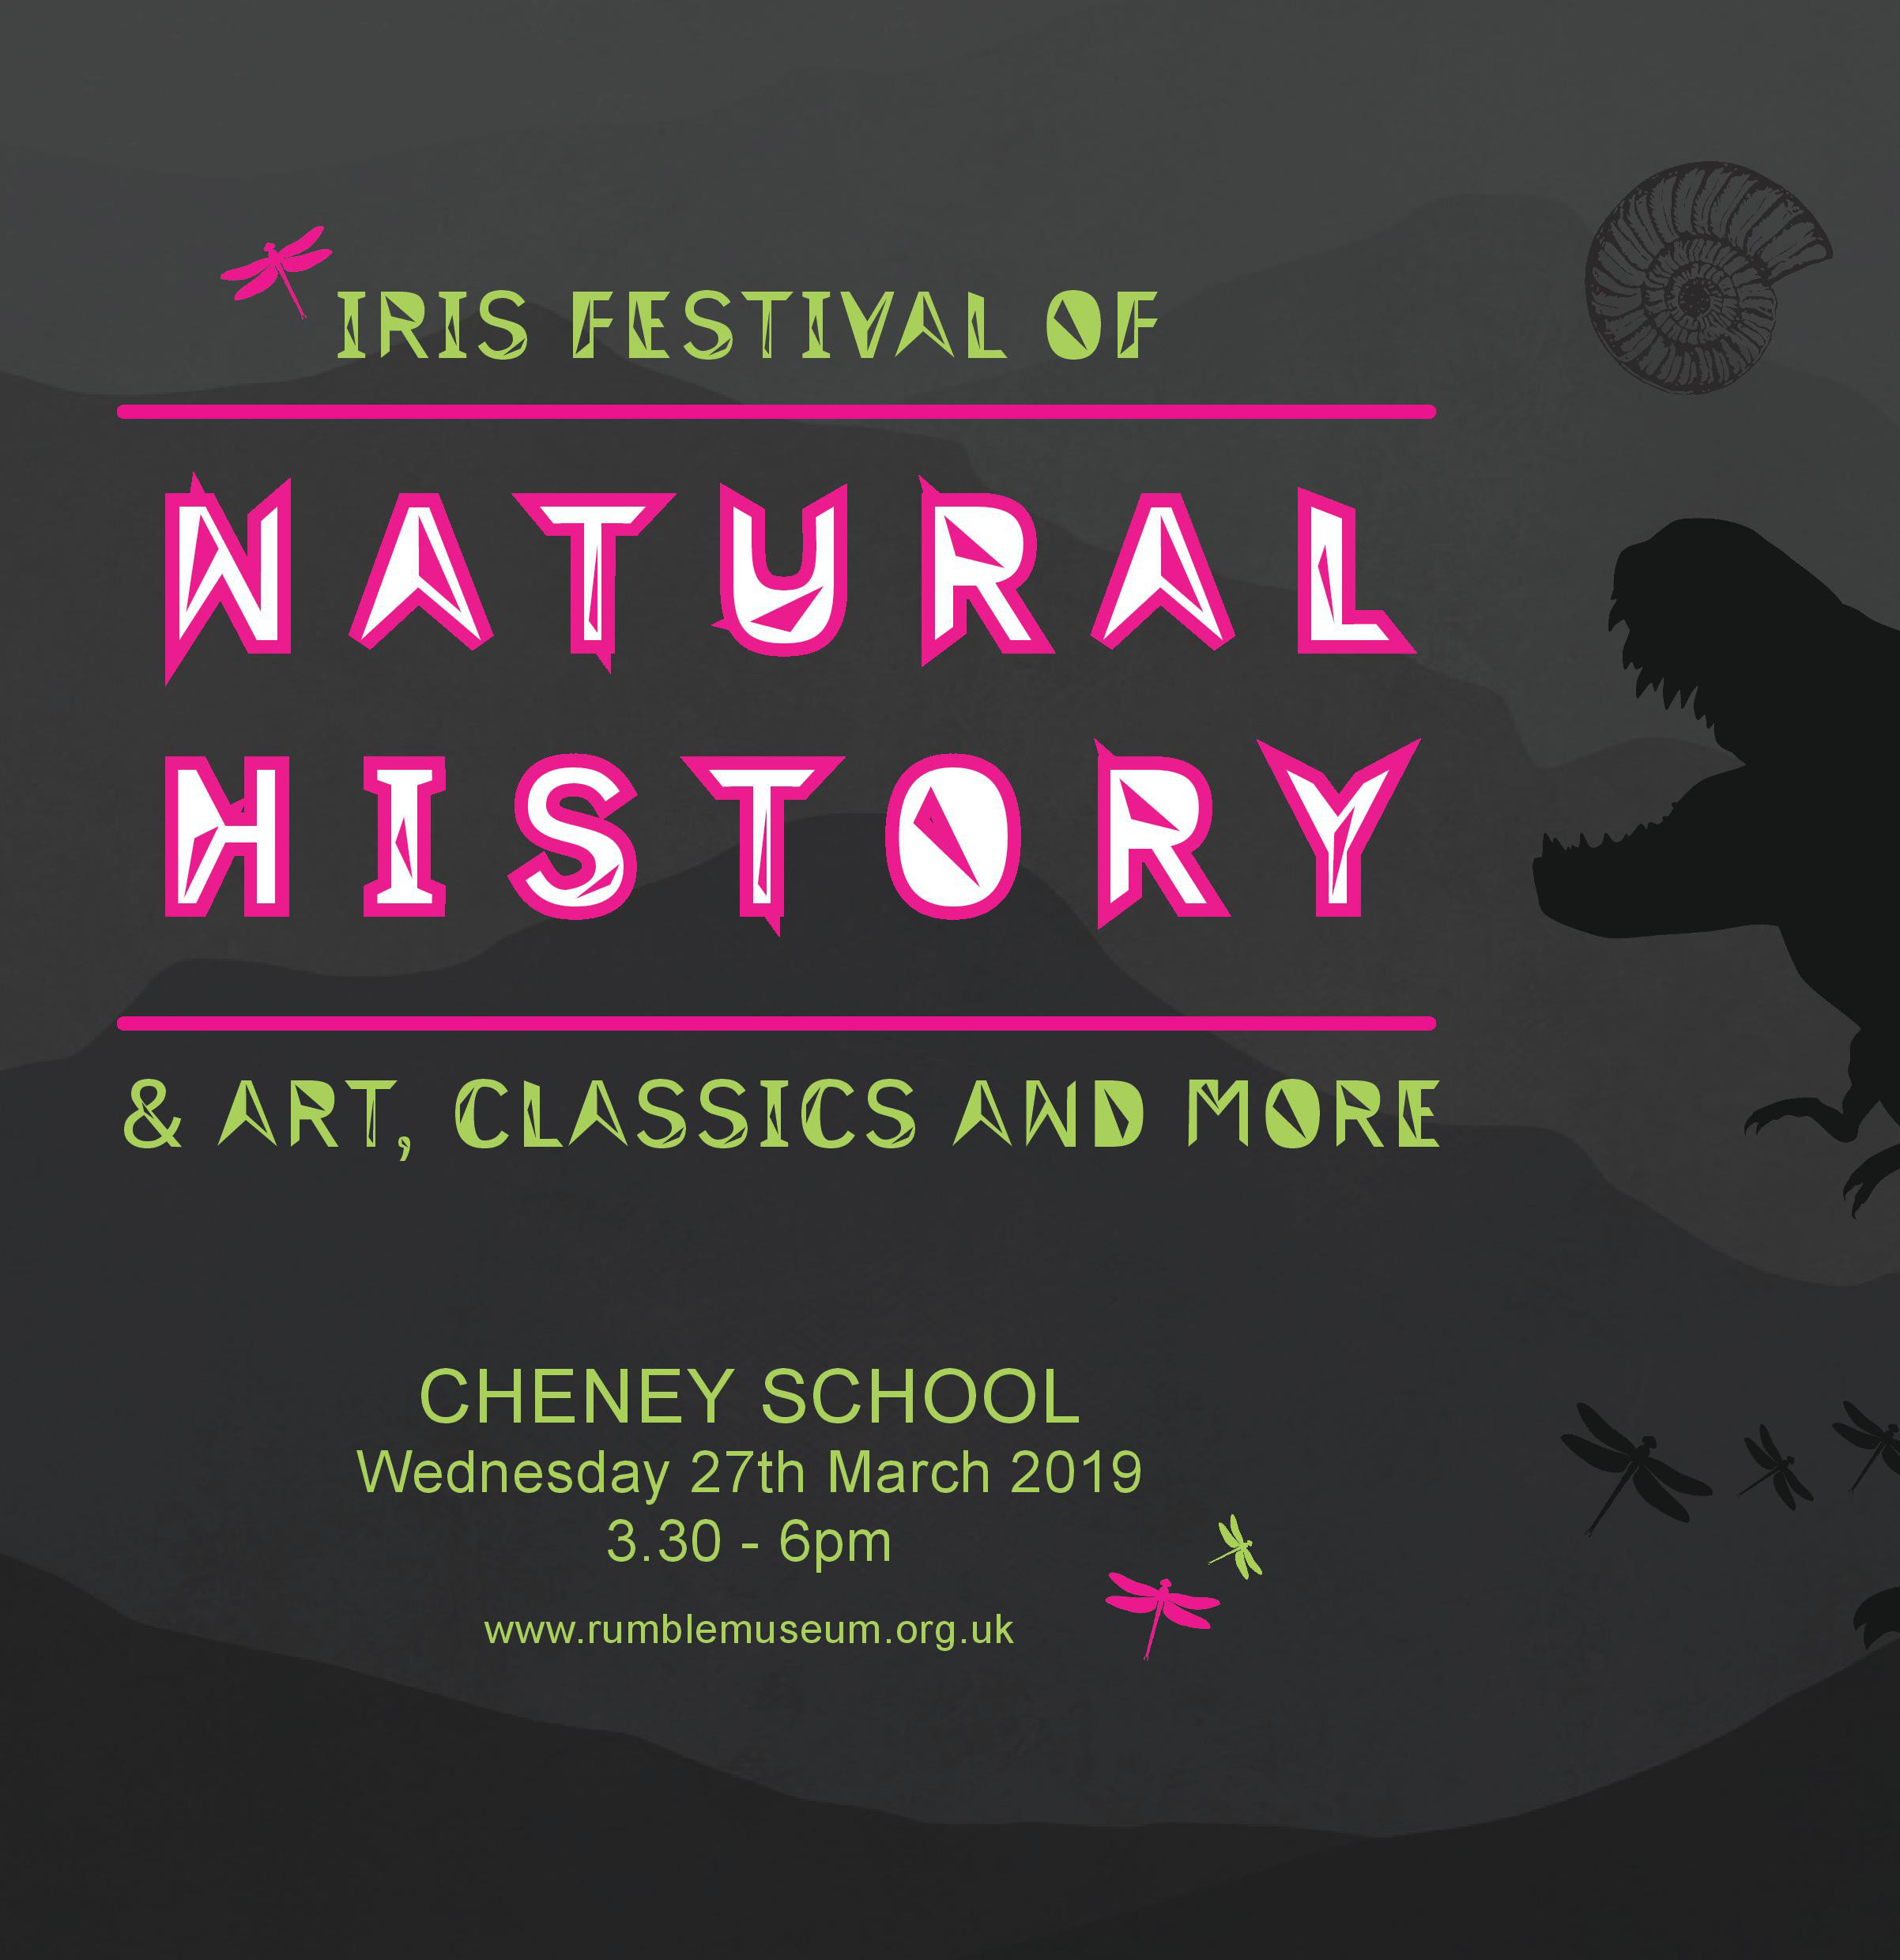 Iris Festival of Natural History, Classics, Art and More, 27 March 2019